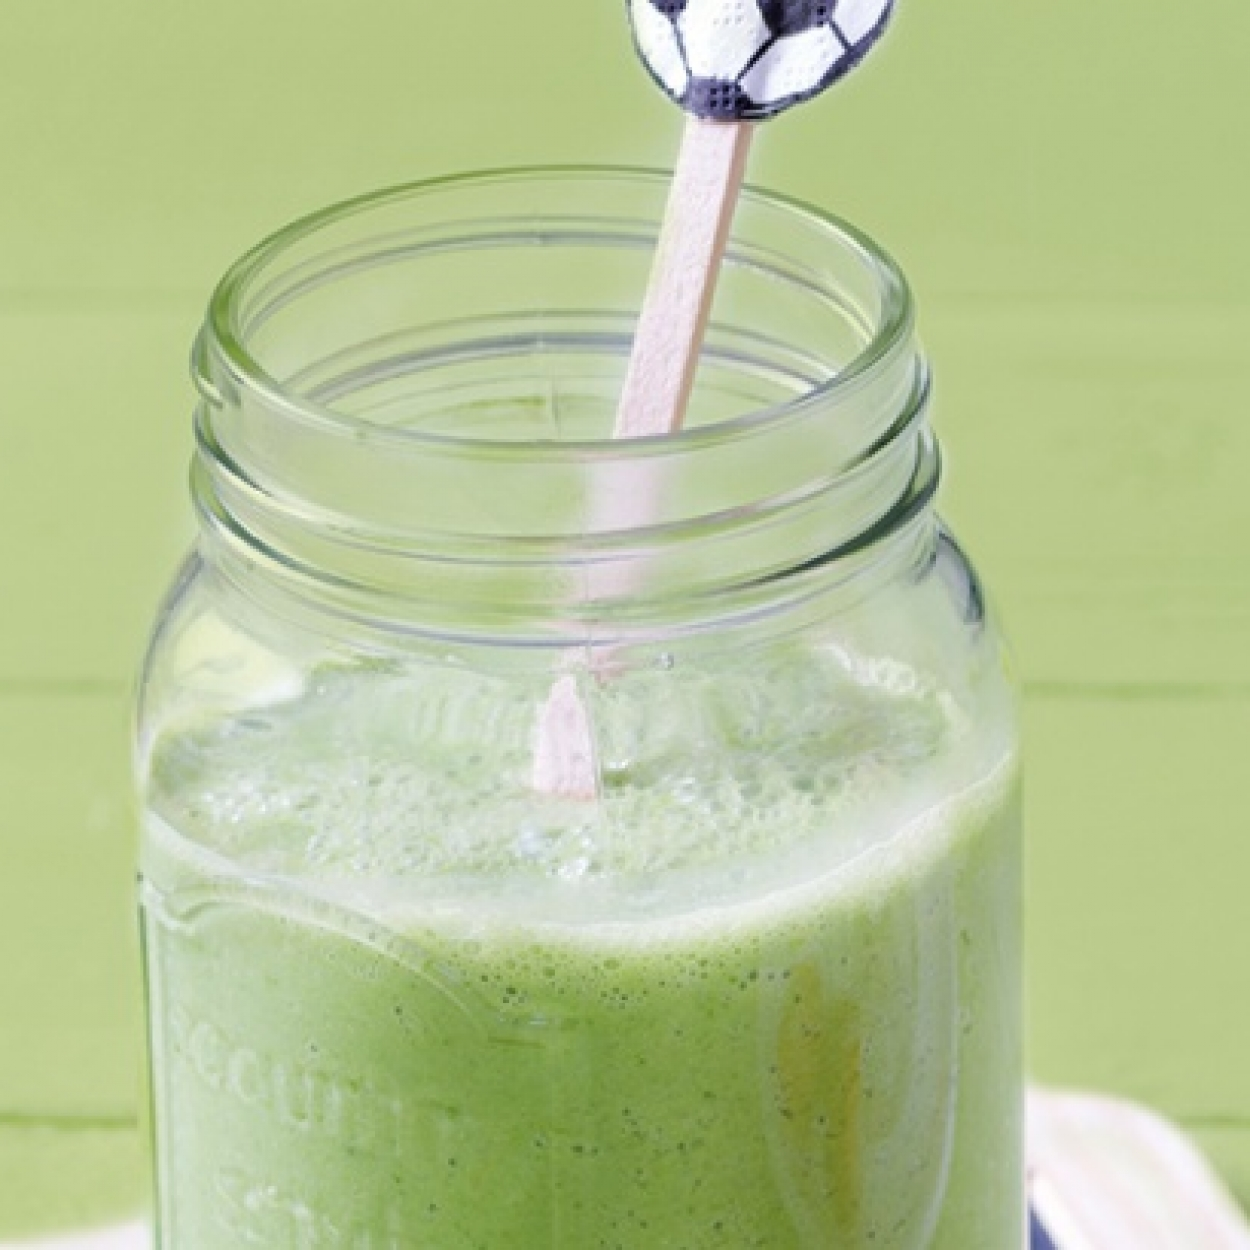 Recette Smoothie vert Groene smoothie carrefour 1x1